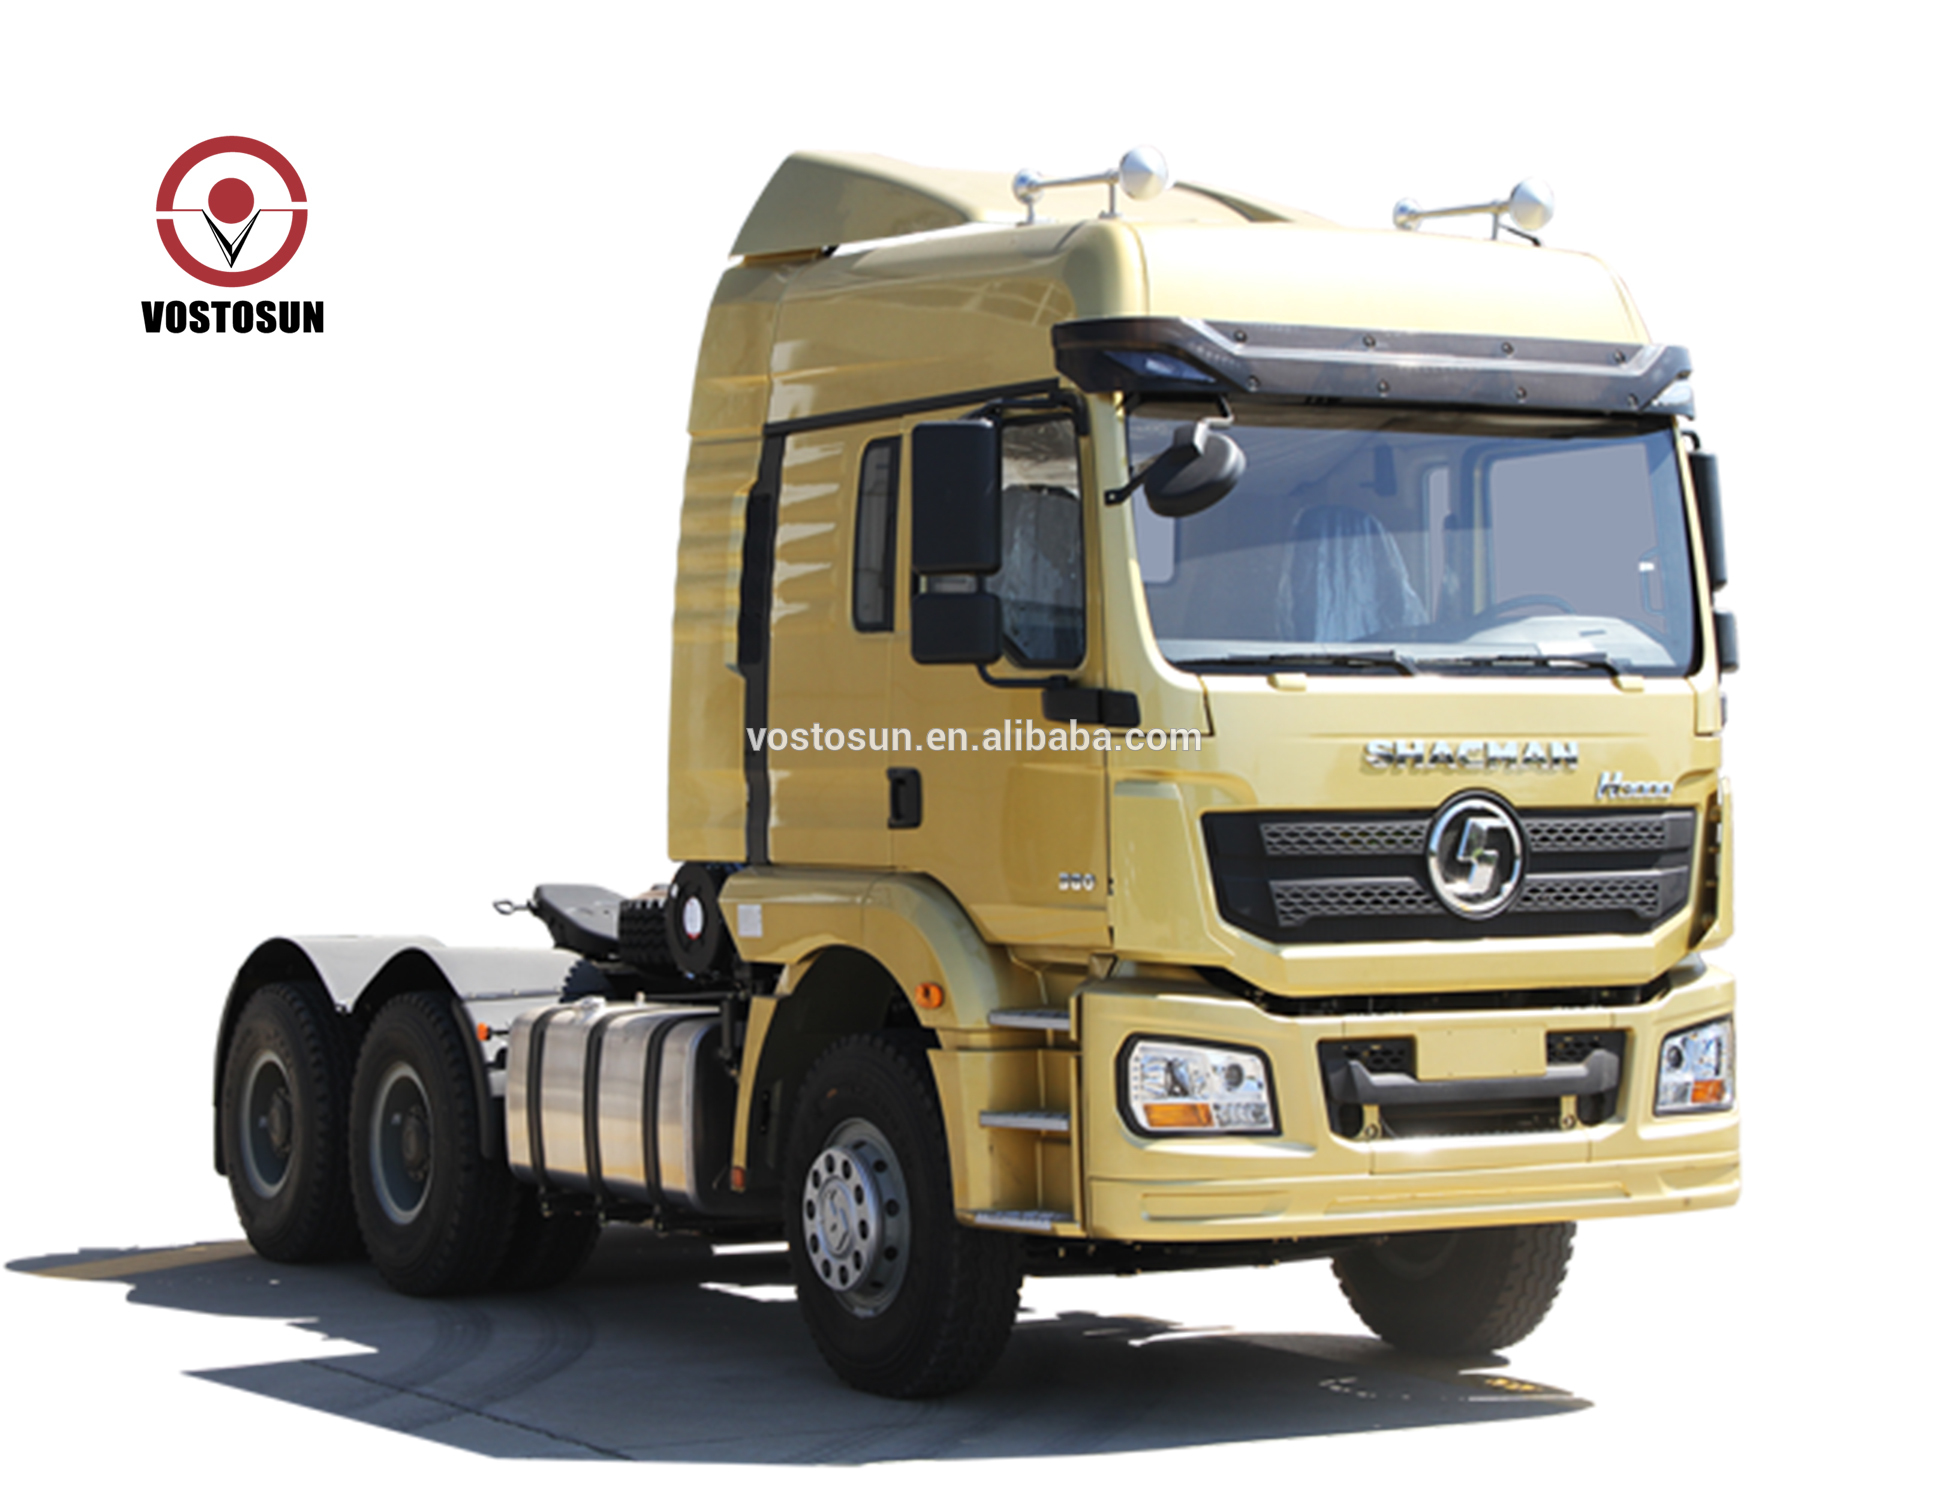 H3000-SX4255HT324 375hp Camion Del Trattore 6X4 SHACMAN Drive Discarica Camion Diesel Testa